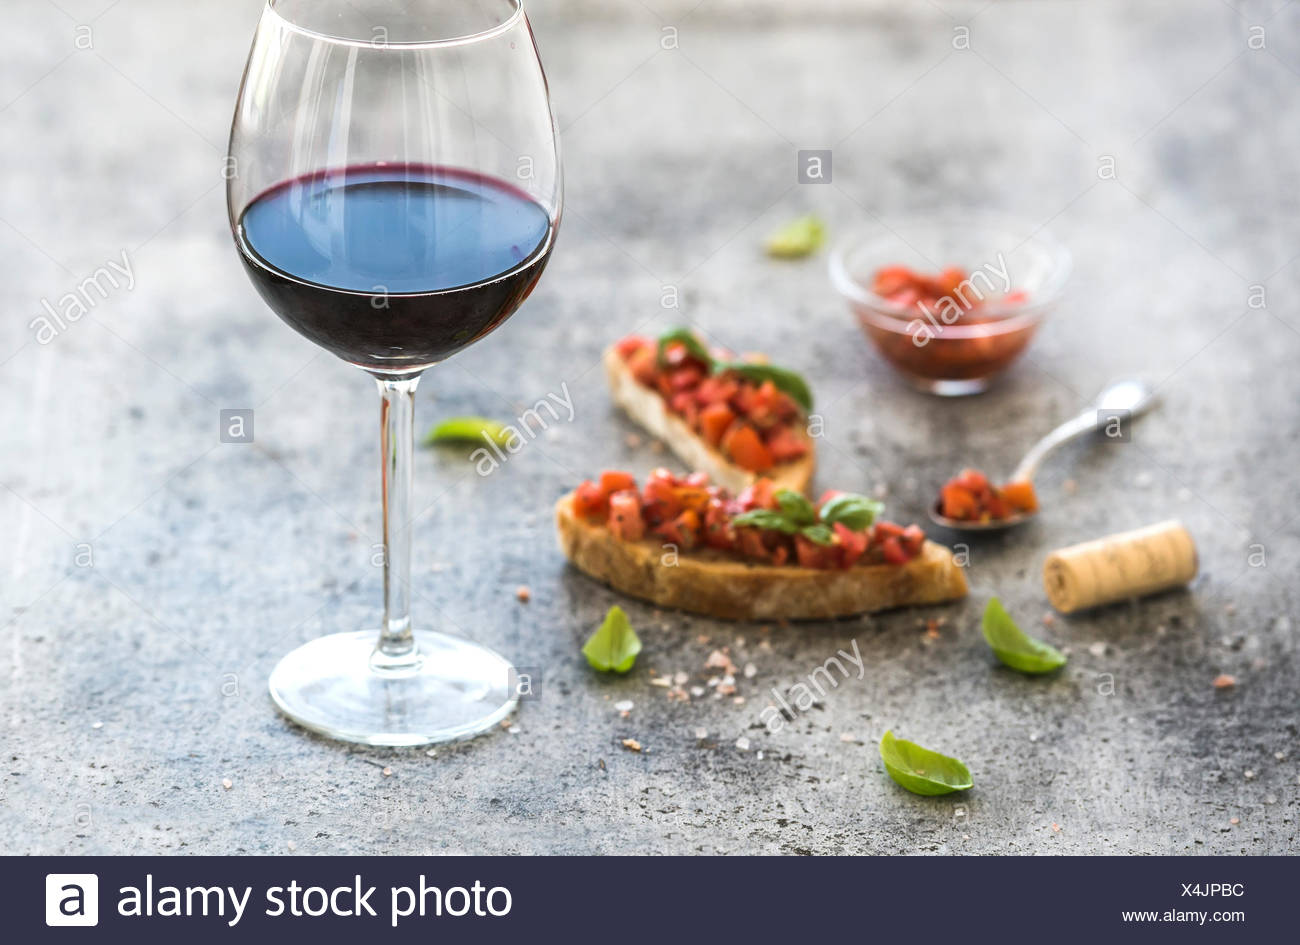 Glass of red wine and canapes with tomatoes and basil, selective focus, horizontal composition - Stock Image